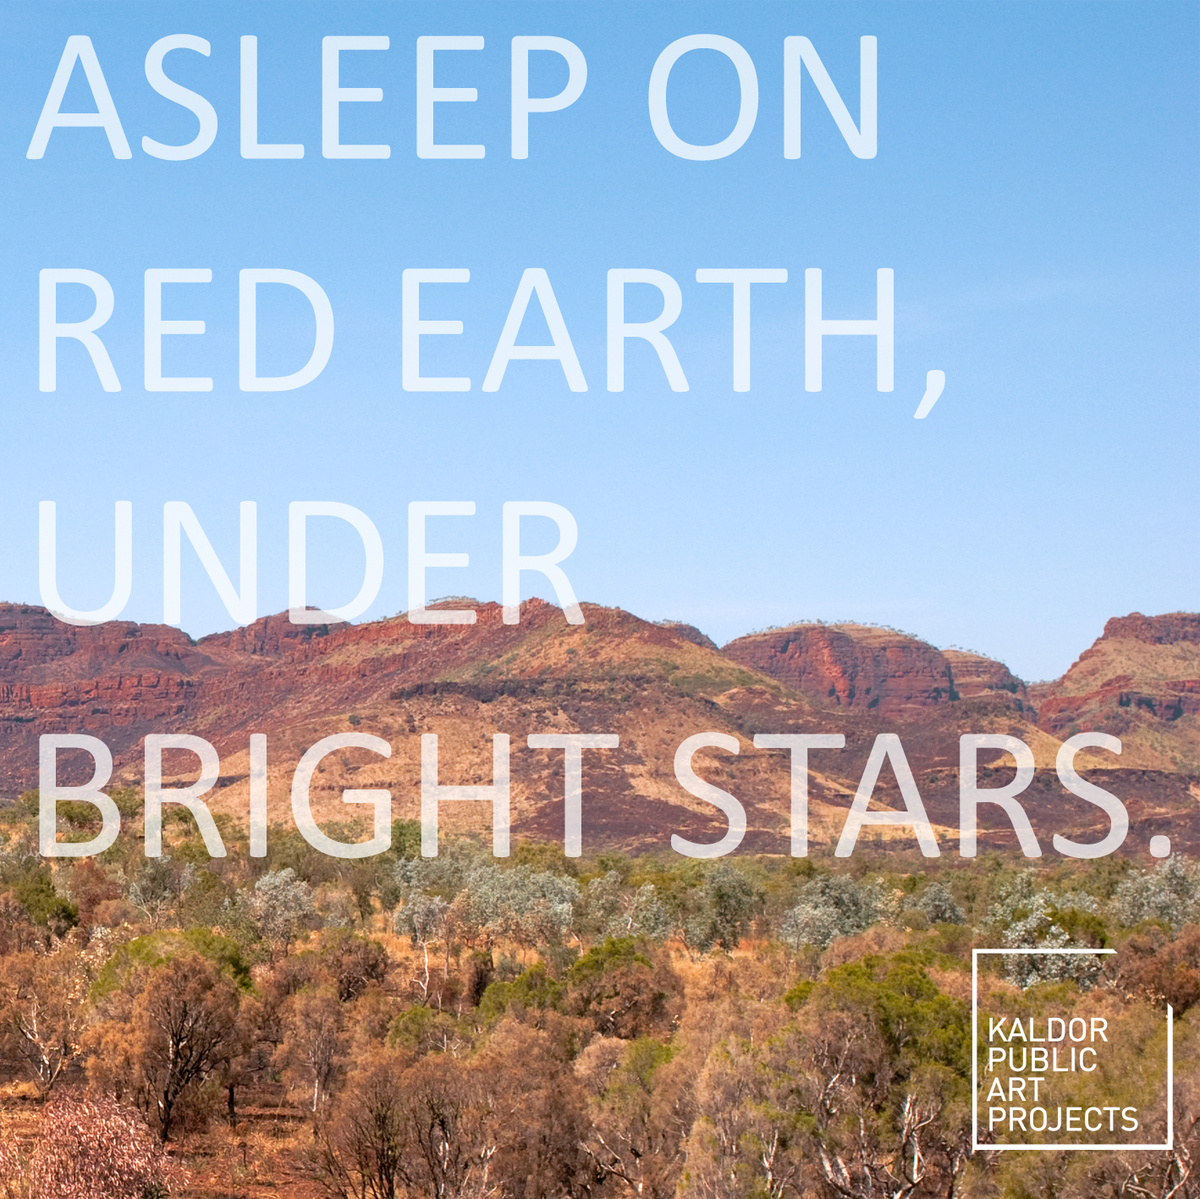 Asleep-on-red-earth-under-bright-stars